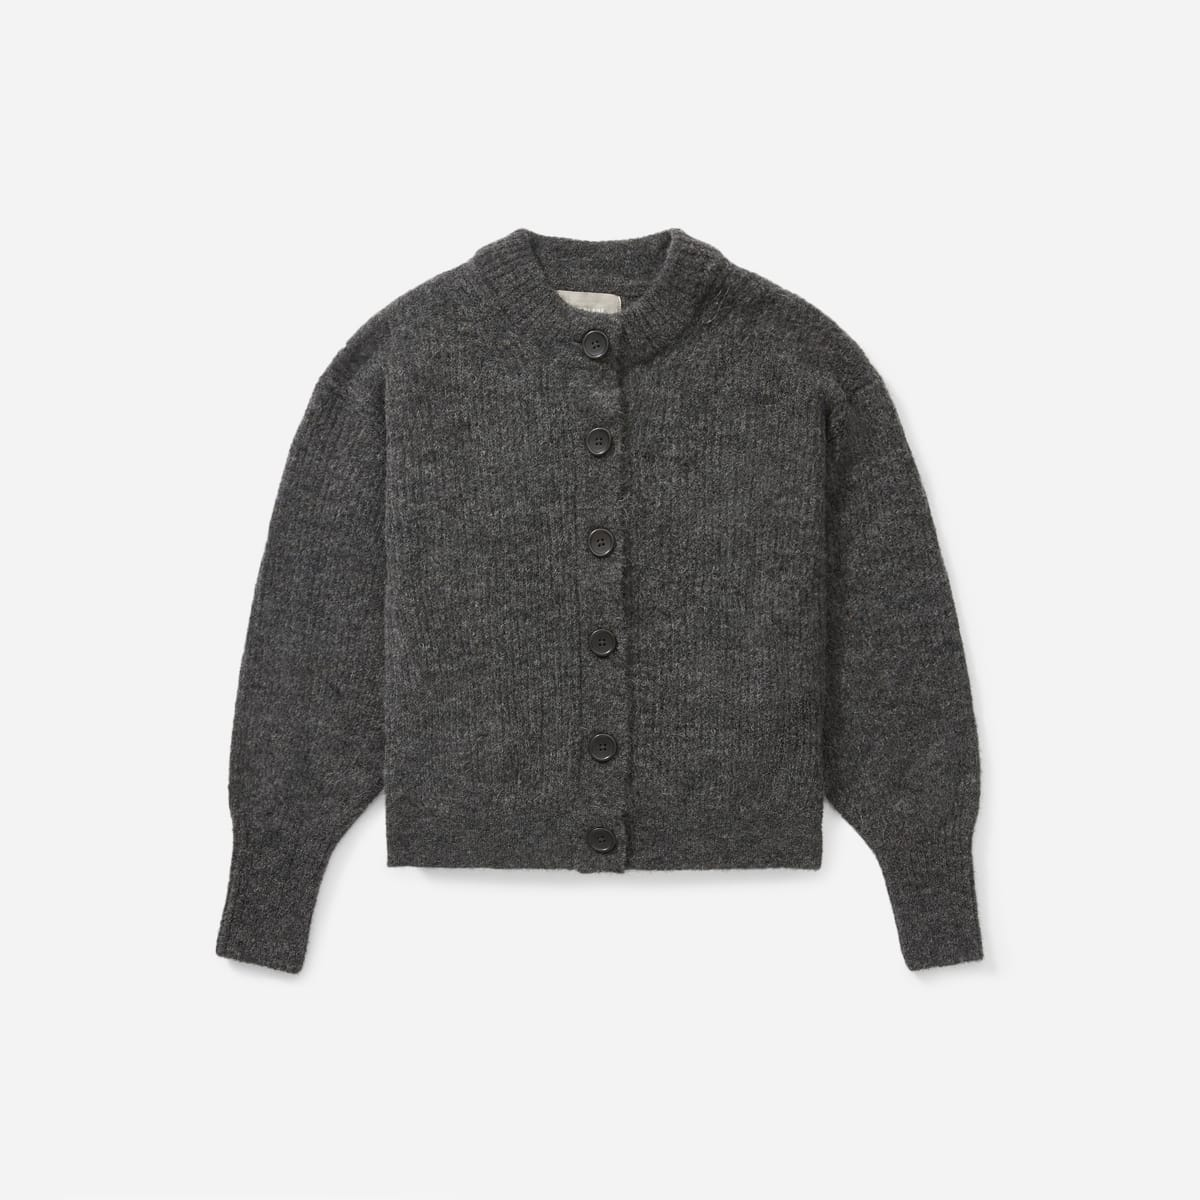 This Everlane Sweater Is So Popular, Two InStyle Editors Wore It to the Office on the Same Day